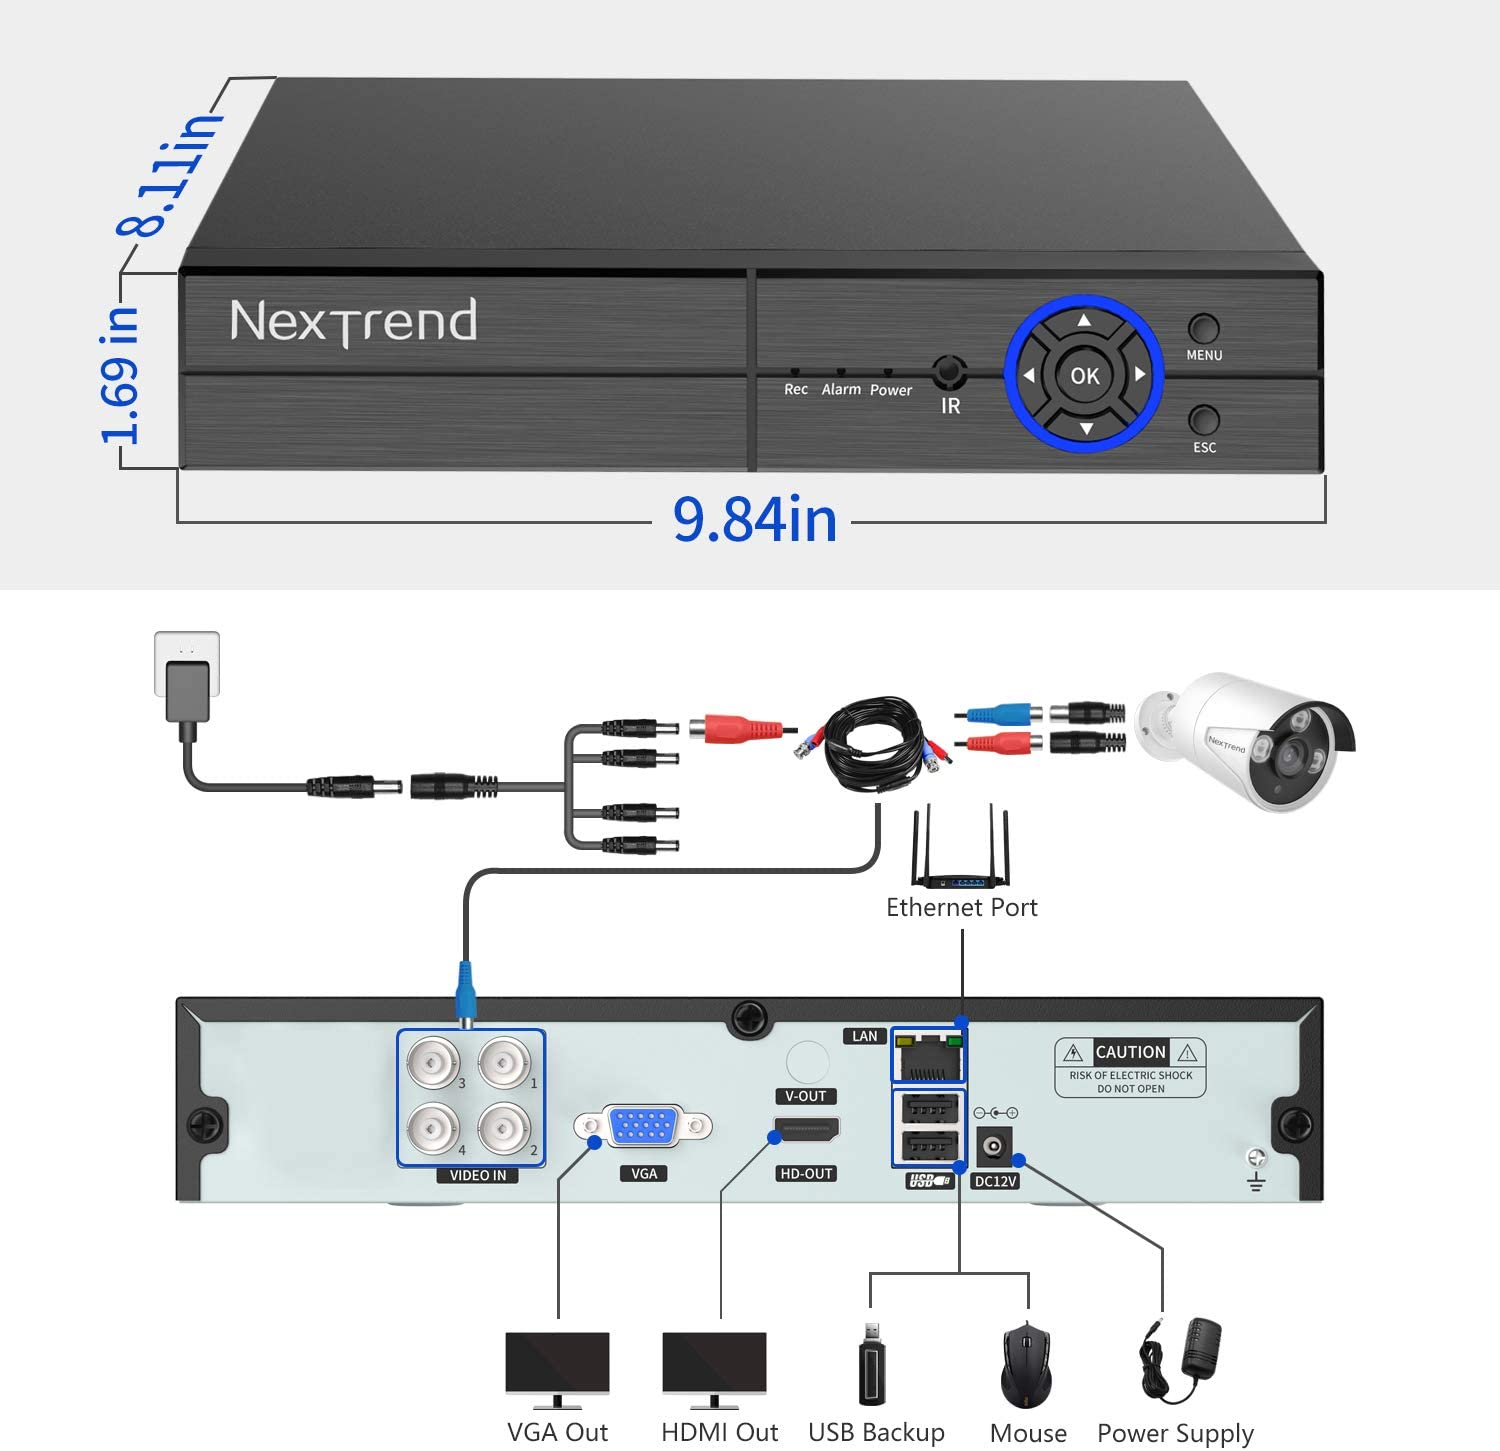 NexTrend CCTV Home Surveillance 【5MP】 Wired Security Camera System Motion Alert Remote View Free APP 4Channel DVR with 4pcs 5 Megapixel Super HD Camera 1TB HDD for 24//7 Recording